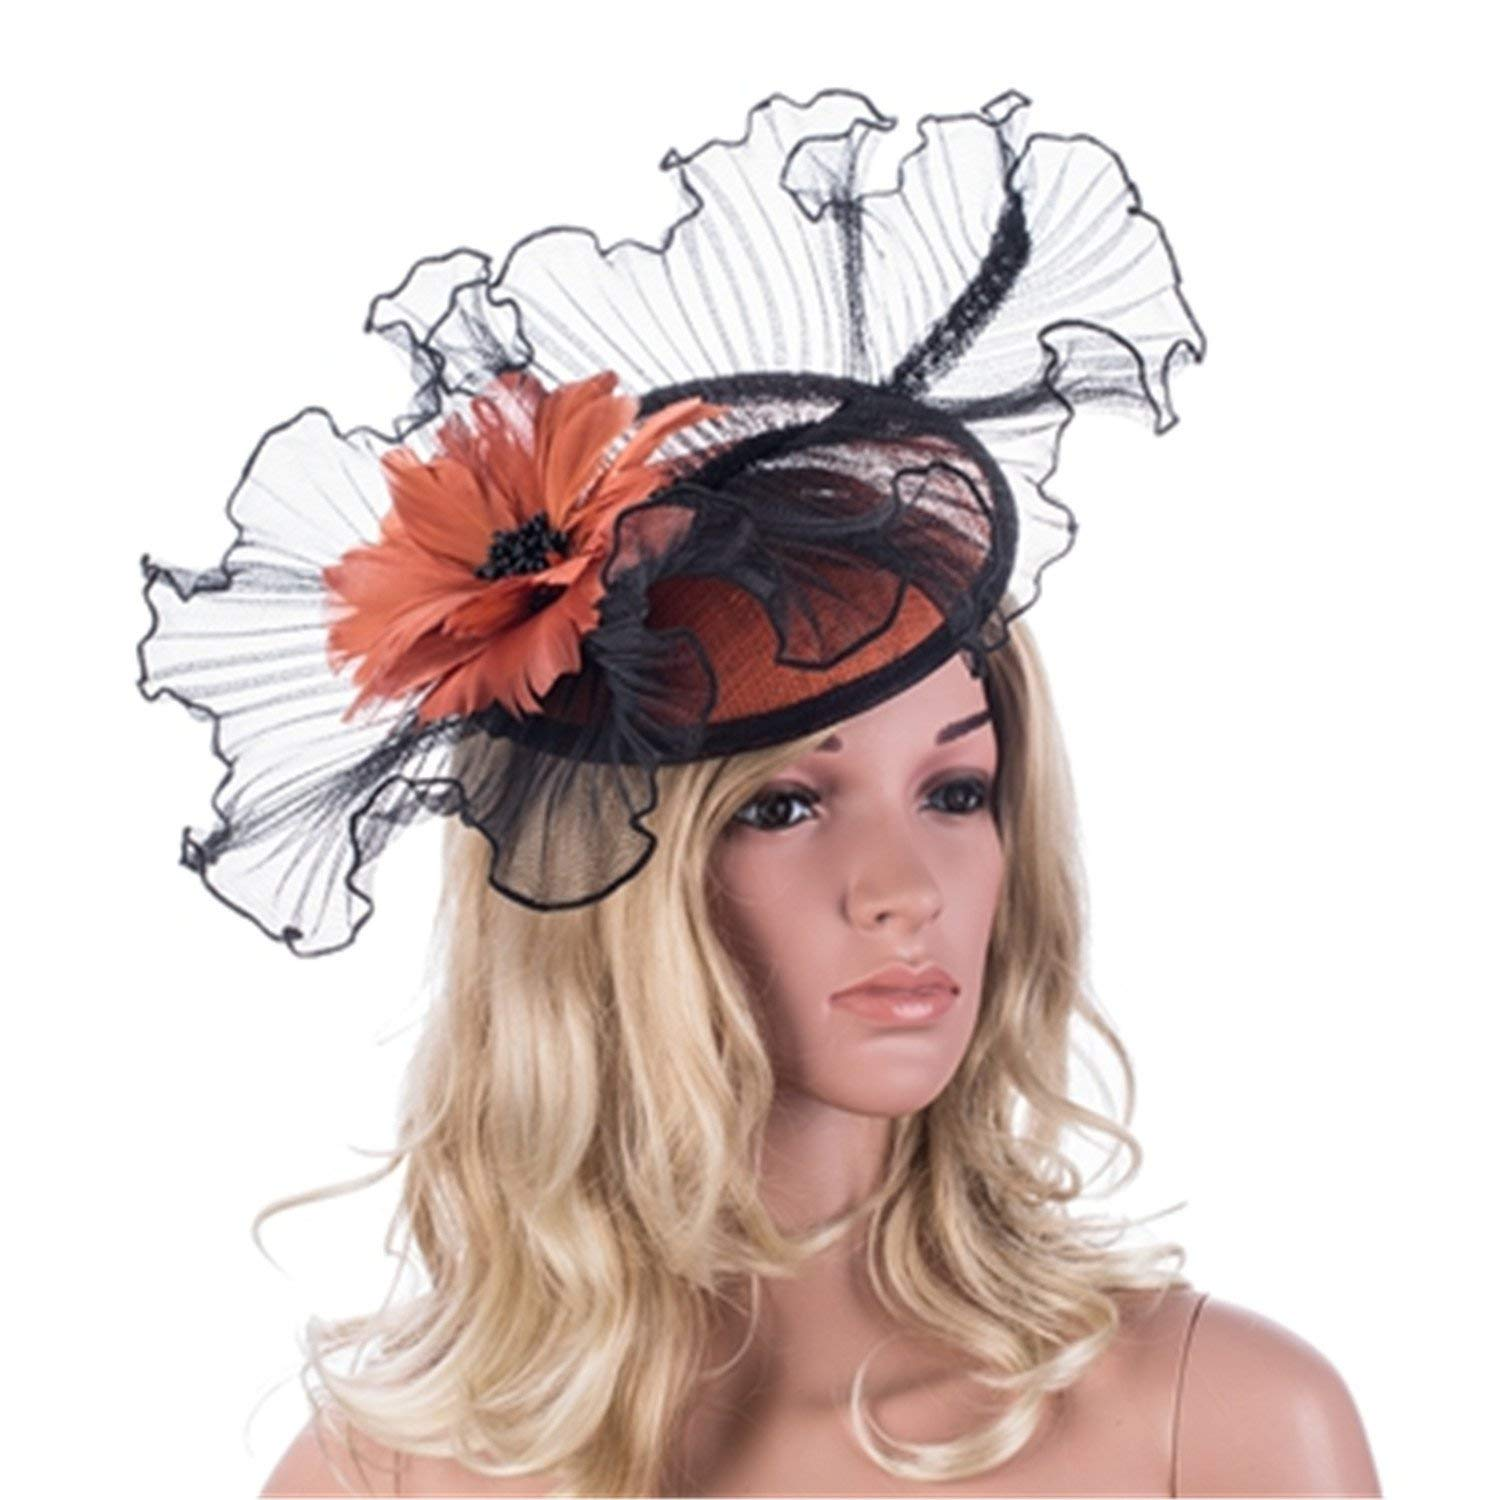 f1944fdb Get Quotations · Orange Flower Core Womens Sinamay Clips Saucer Hat  Fascinator Hat Bowknot Felt Cocktail Party Wedding Church